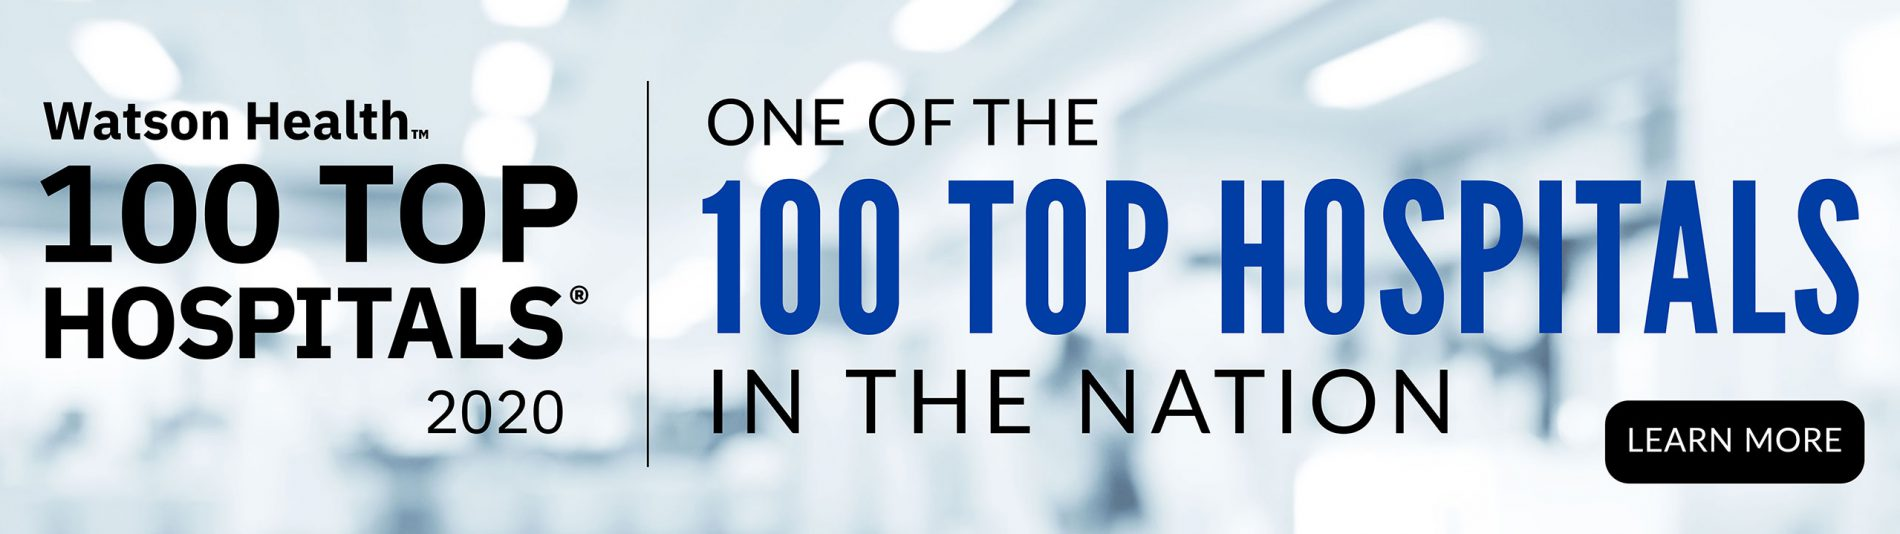 Saint Francis Medical Center has been named to the Fortune/IBM Watson Health 100 Top Hospitals list. Click here to learn more.